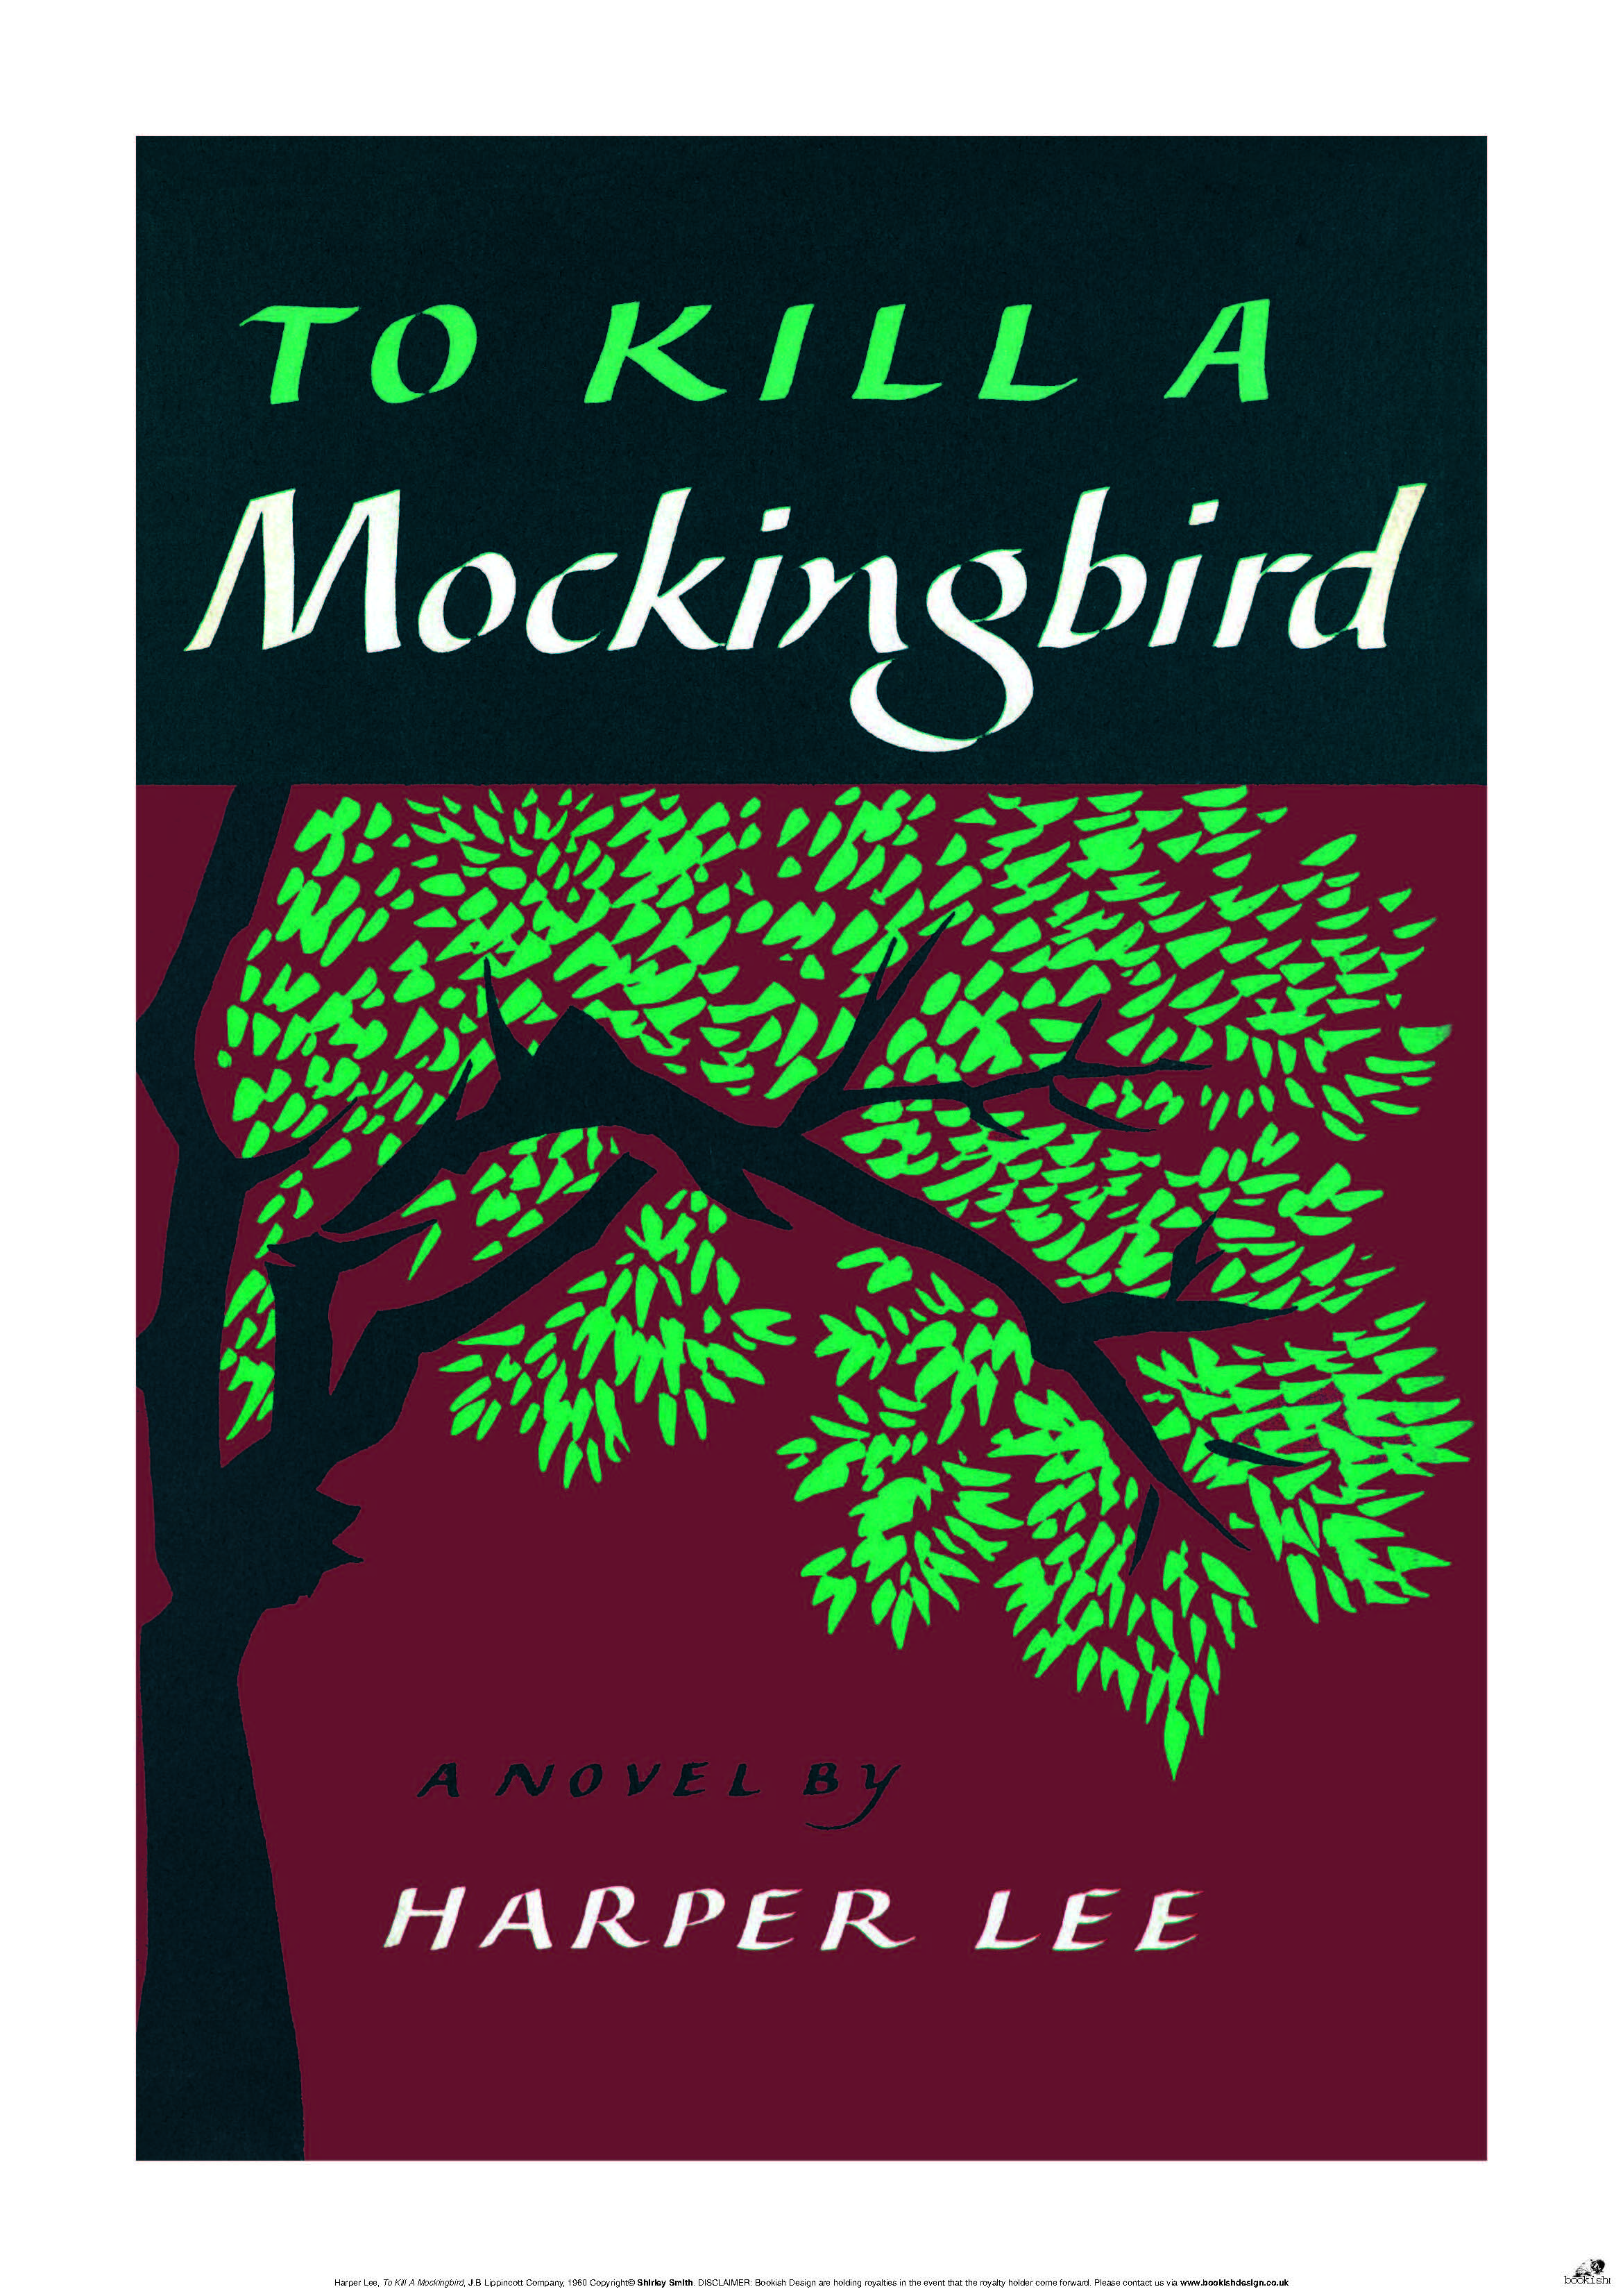 tkam essay innocence The main themes of the book to kill a mockingbird by harper lee, including   although atticus actually manages to prove the innocence of tom robinson, the .